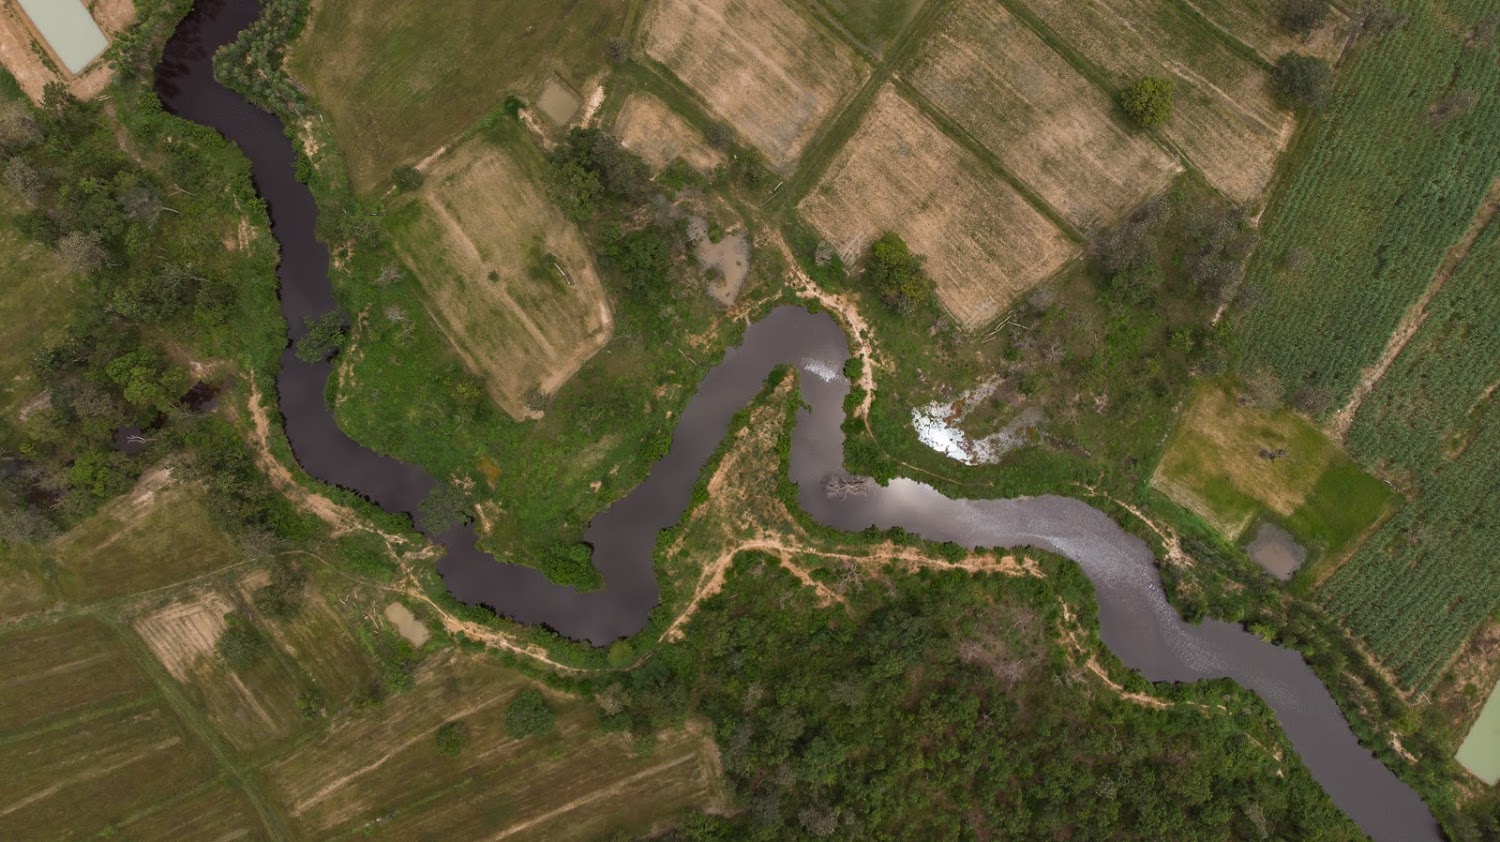 Thailand stimulates know-how for climate-resilience in river basins